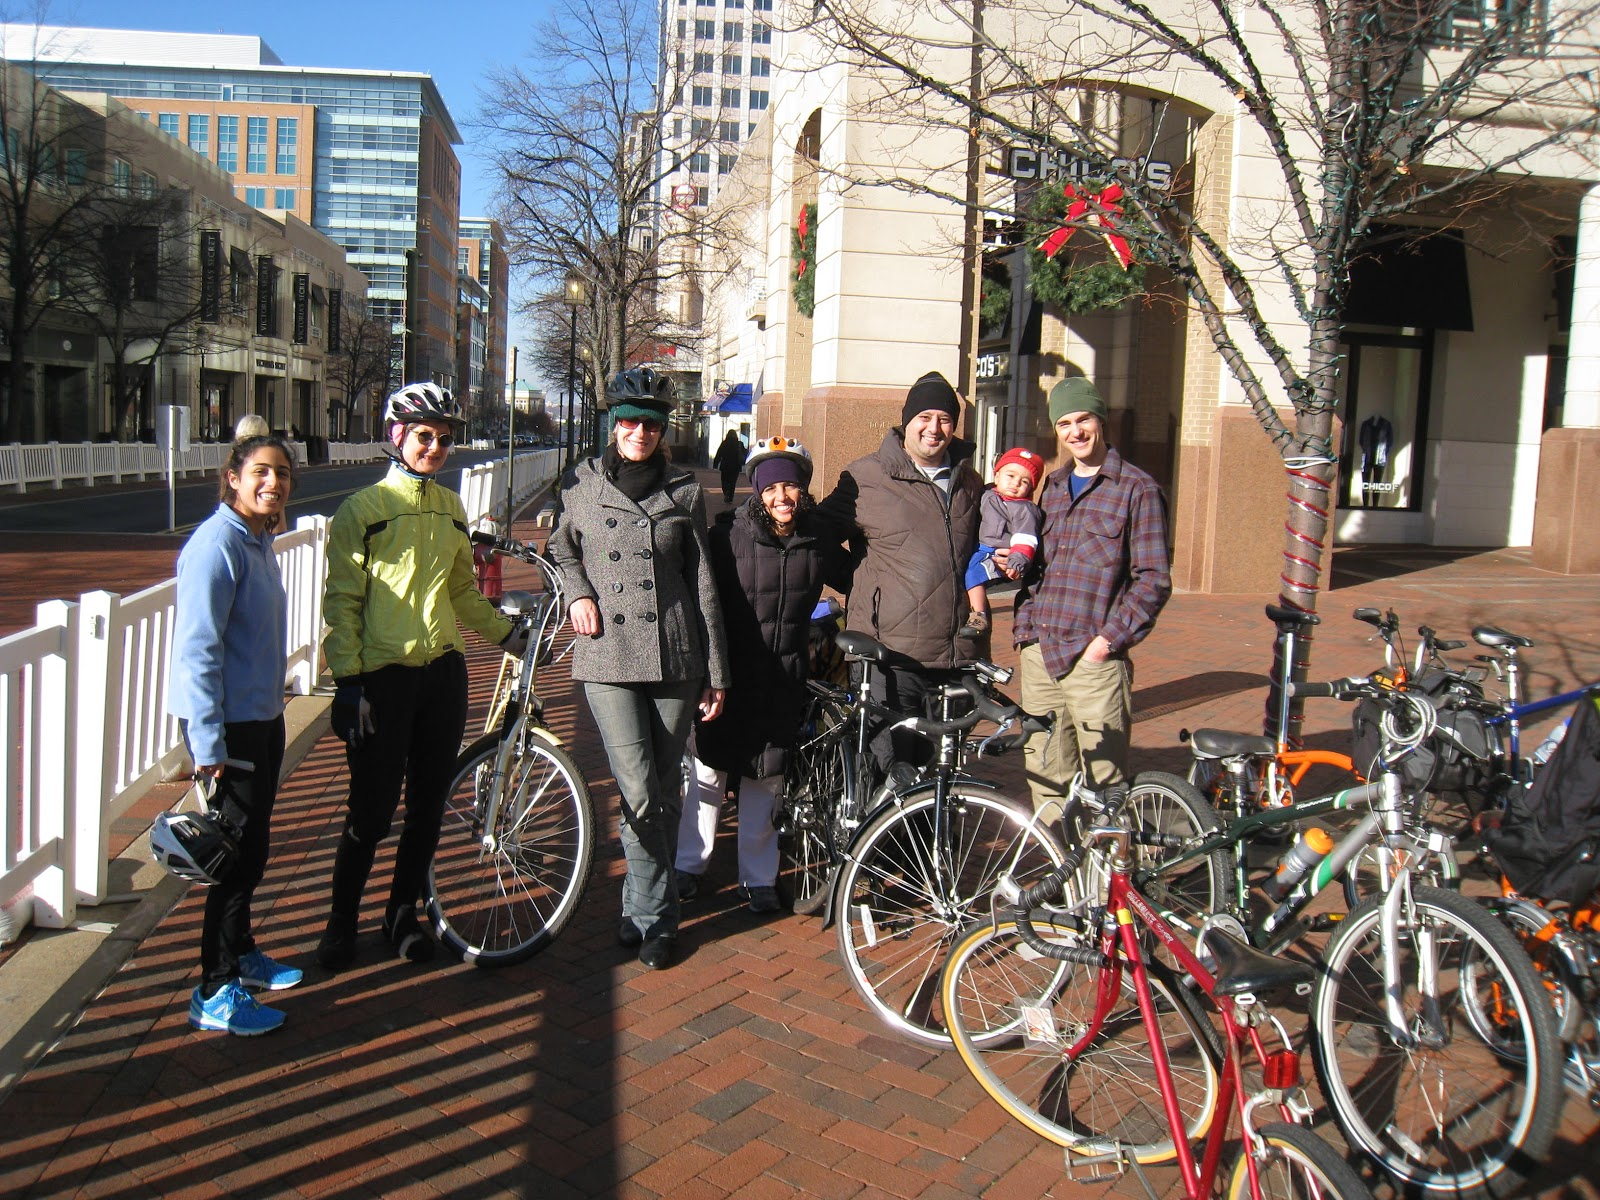 this morning we joined a social ride sponsored by the reston association pedestrian bicycling advisory committee burton griffith of the pbac led the